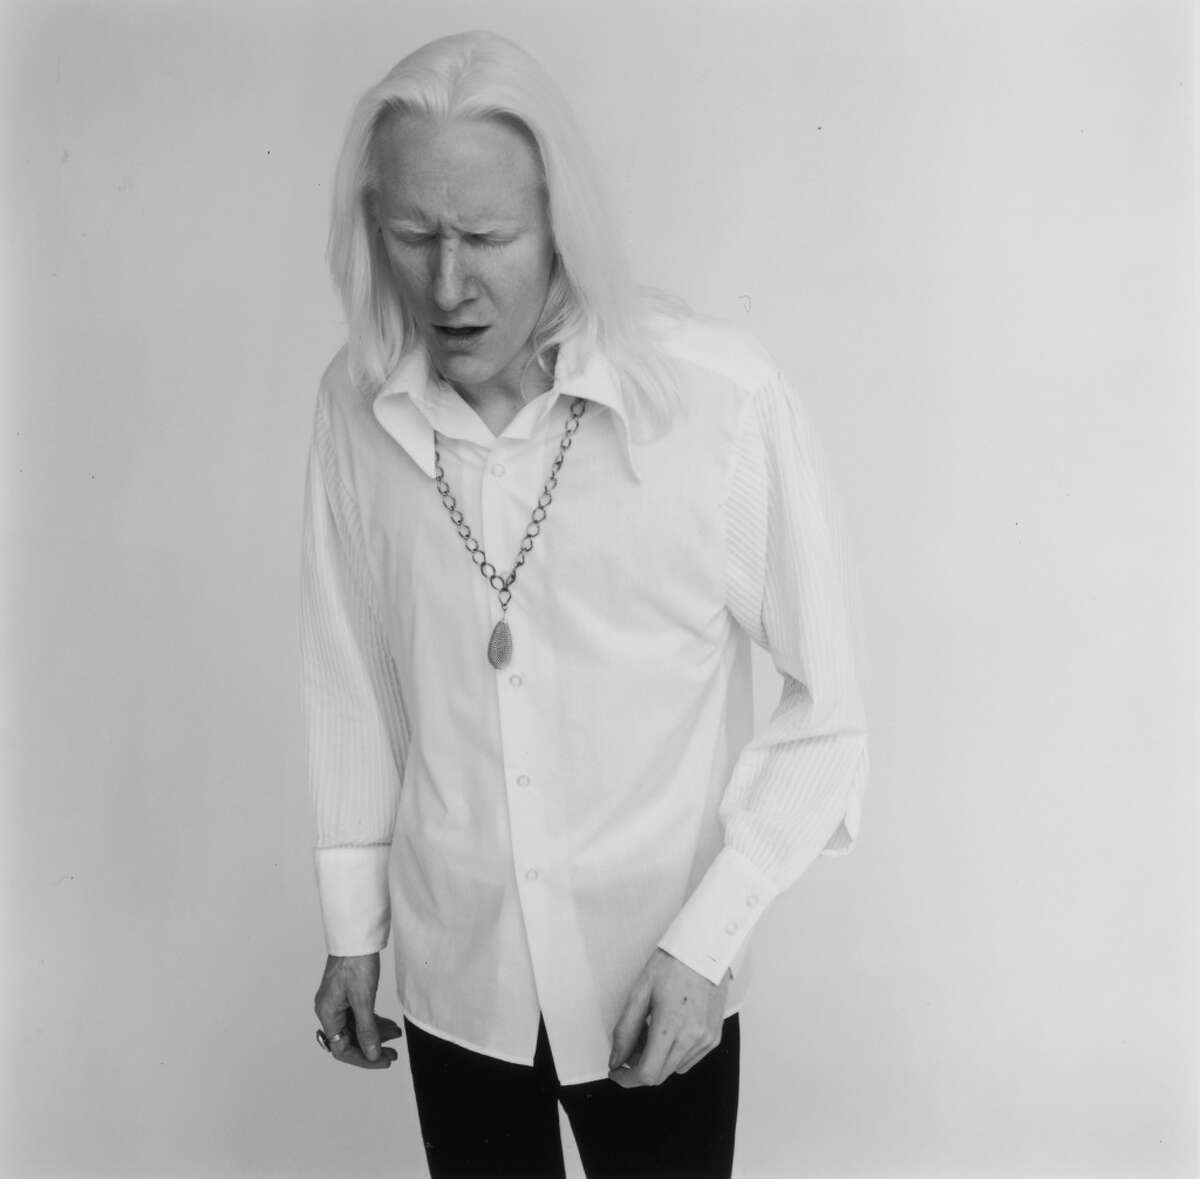 3rd May 1969: Studio portrait of American blues and rock guitarist Johnny Winter, looking down. He wears a necklace and a white shirt. (Photo by Jack Robinson/Hulton Archive/Getty Images)